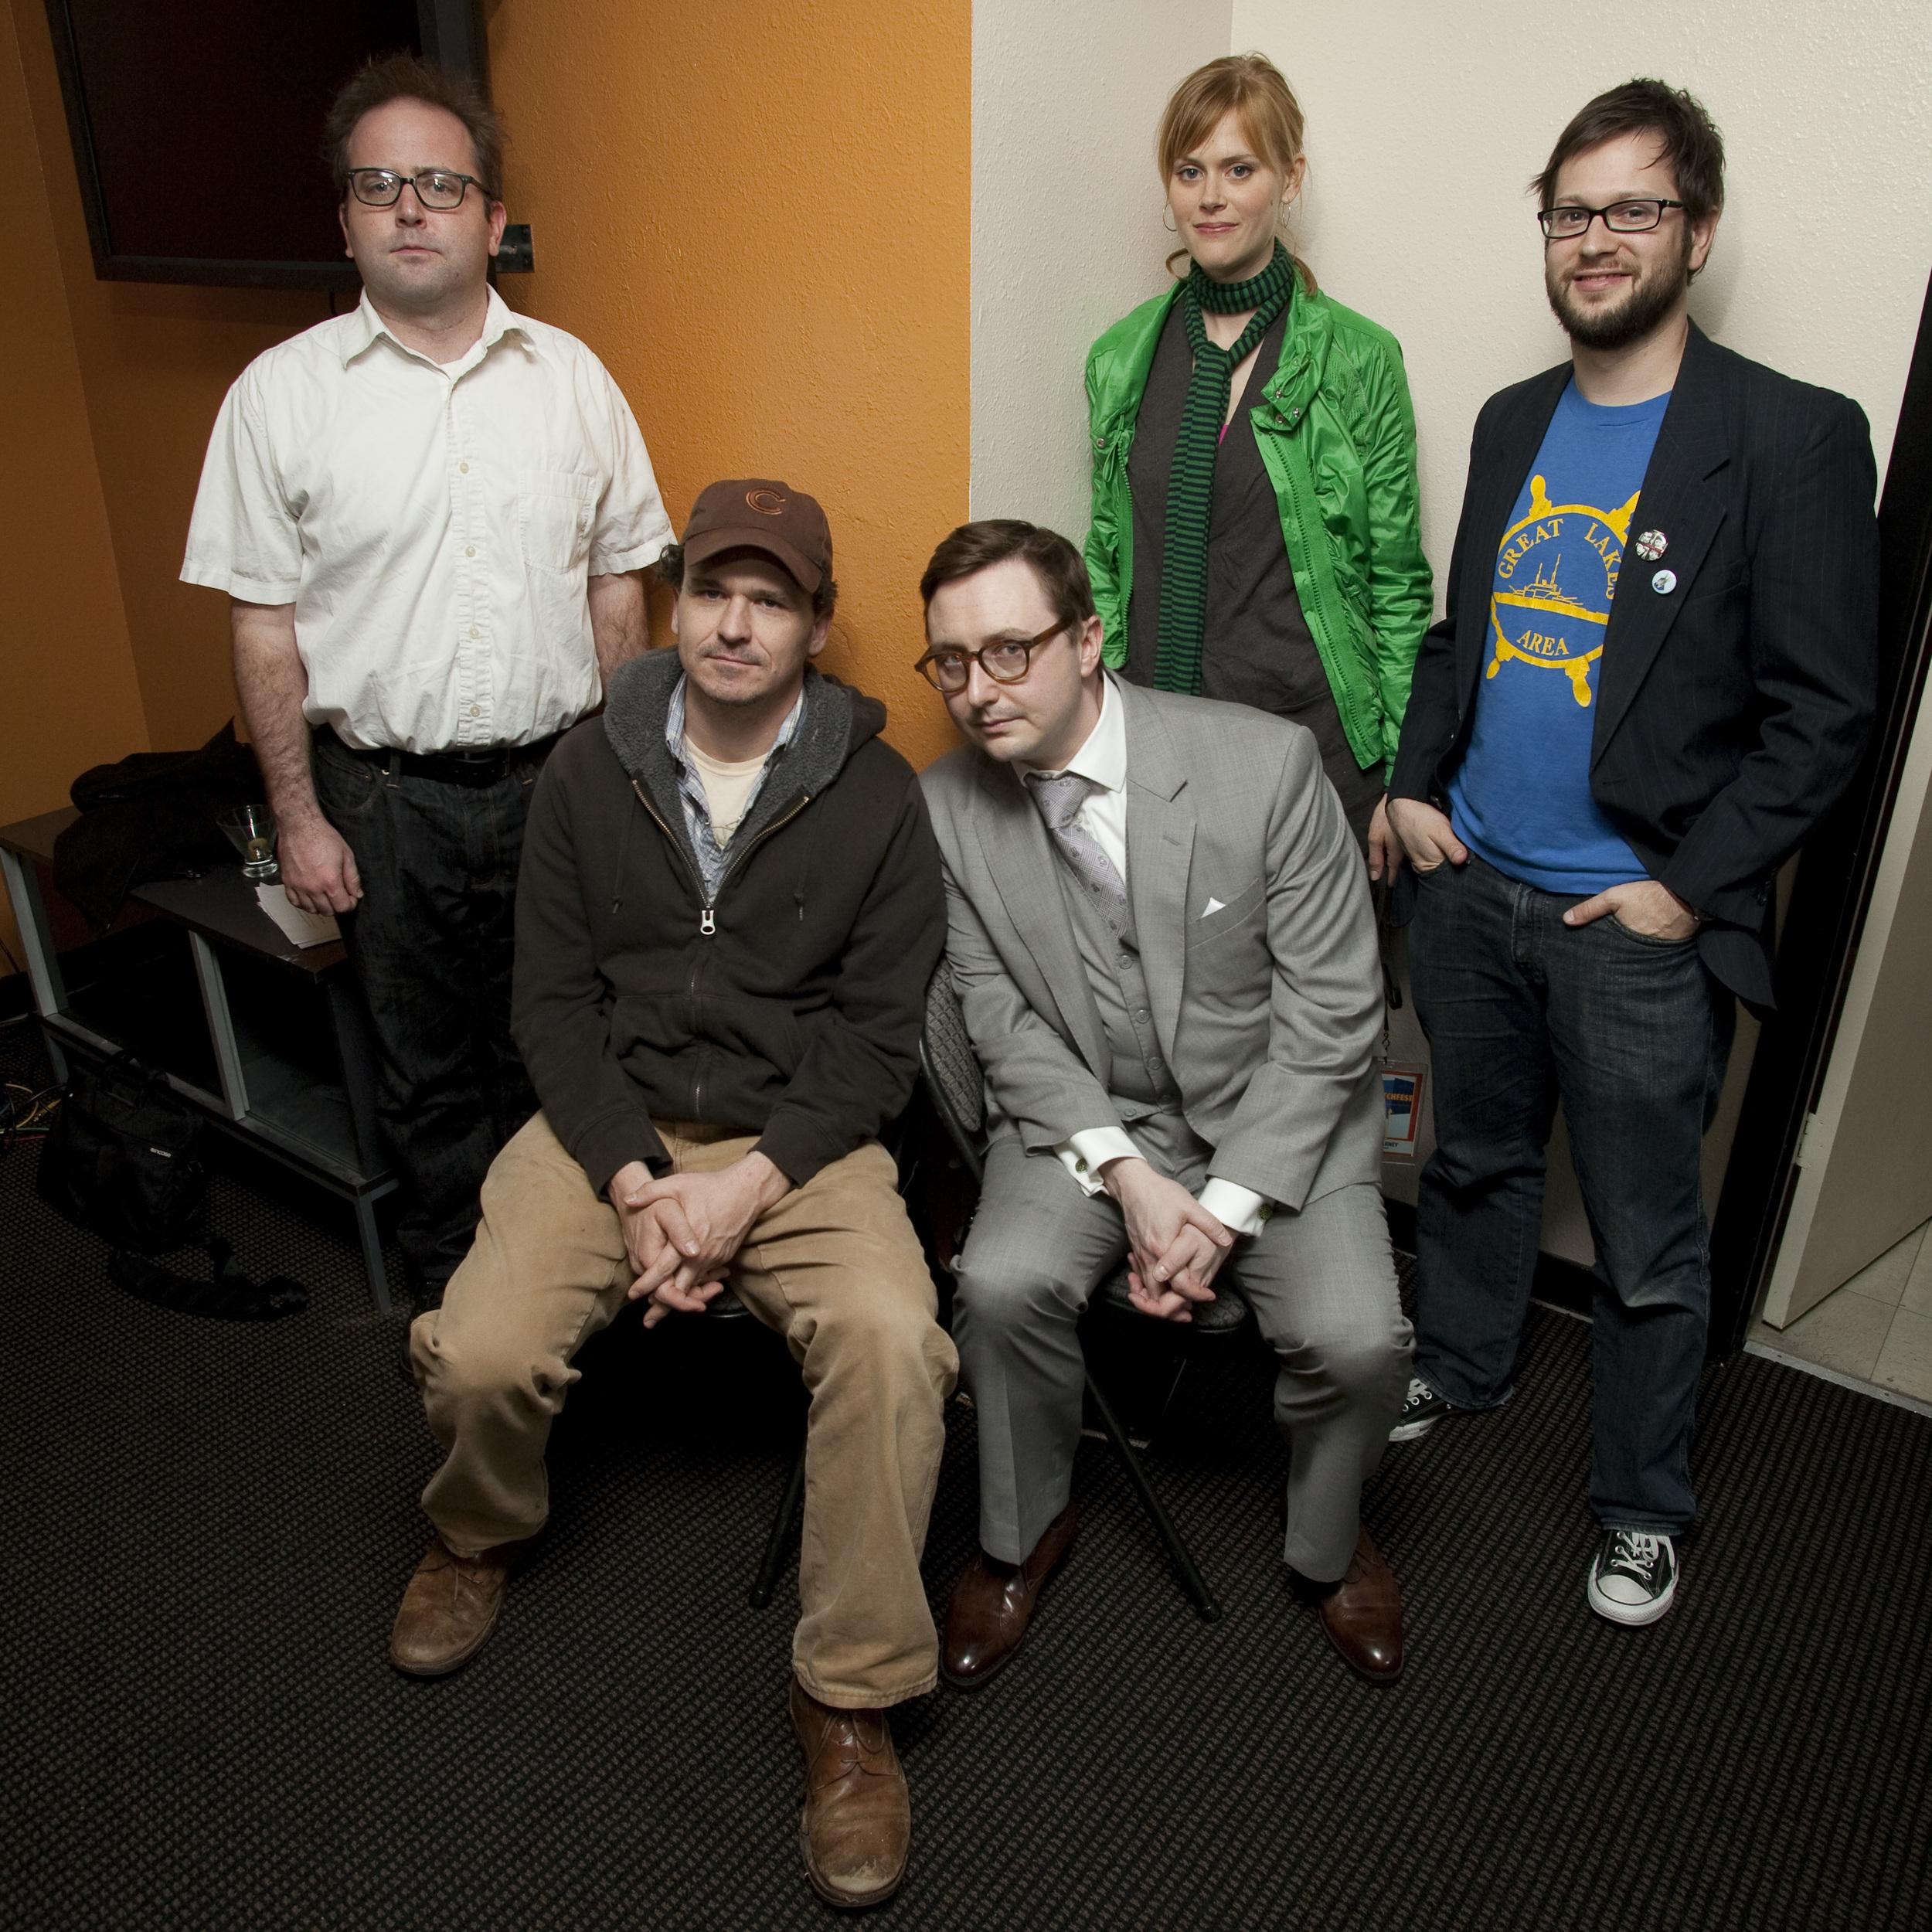 David Owen, Dave Eggers, John Hodgman and Janet Varney. Photo by Jakub Mosur.